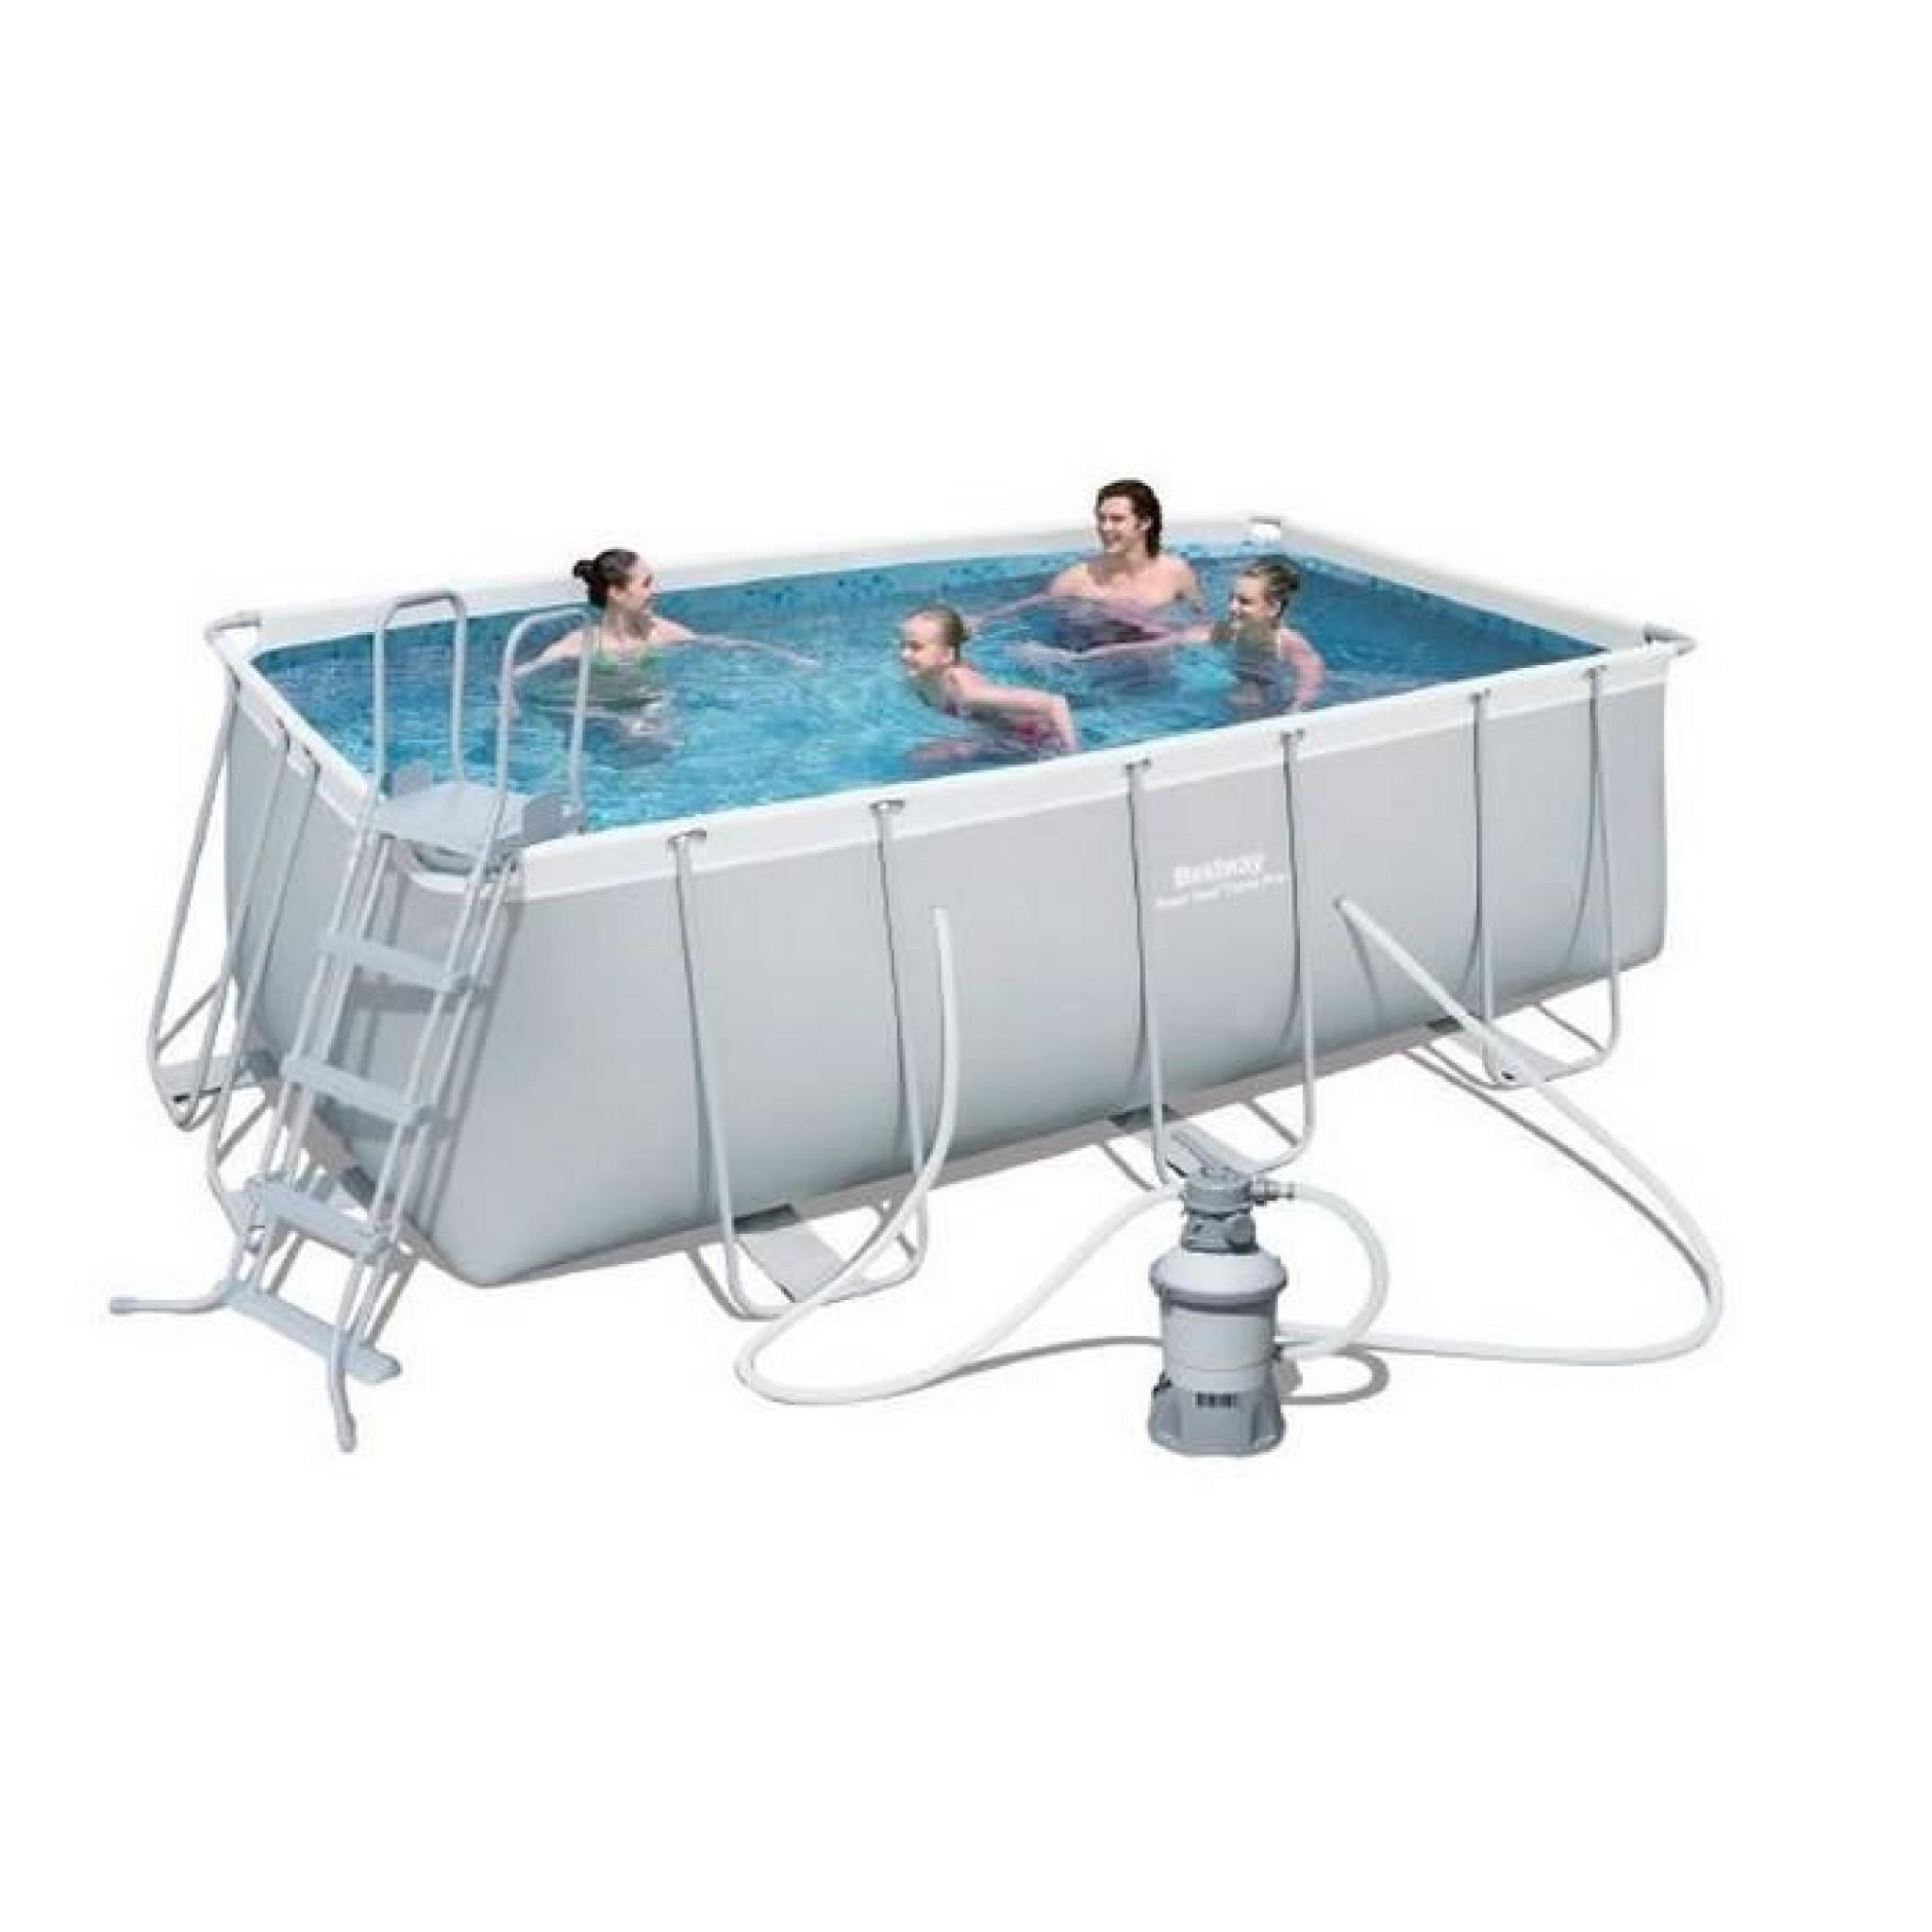 Bestway piscine tubulaire rectangulaire for Piscine rectangulaire bestway